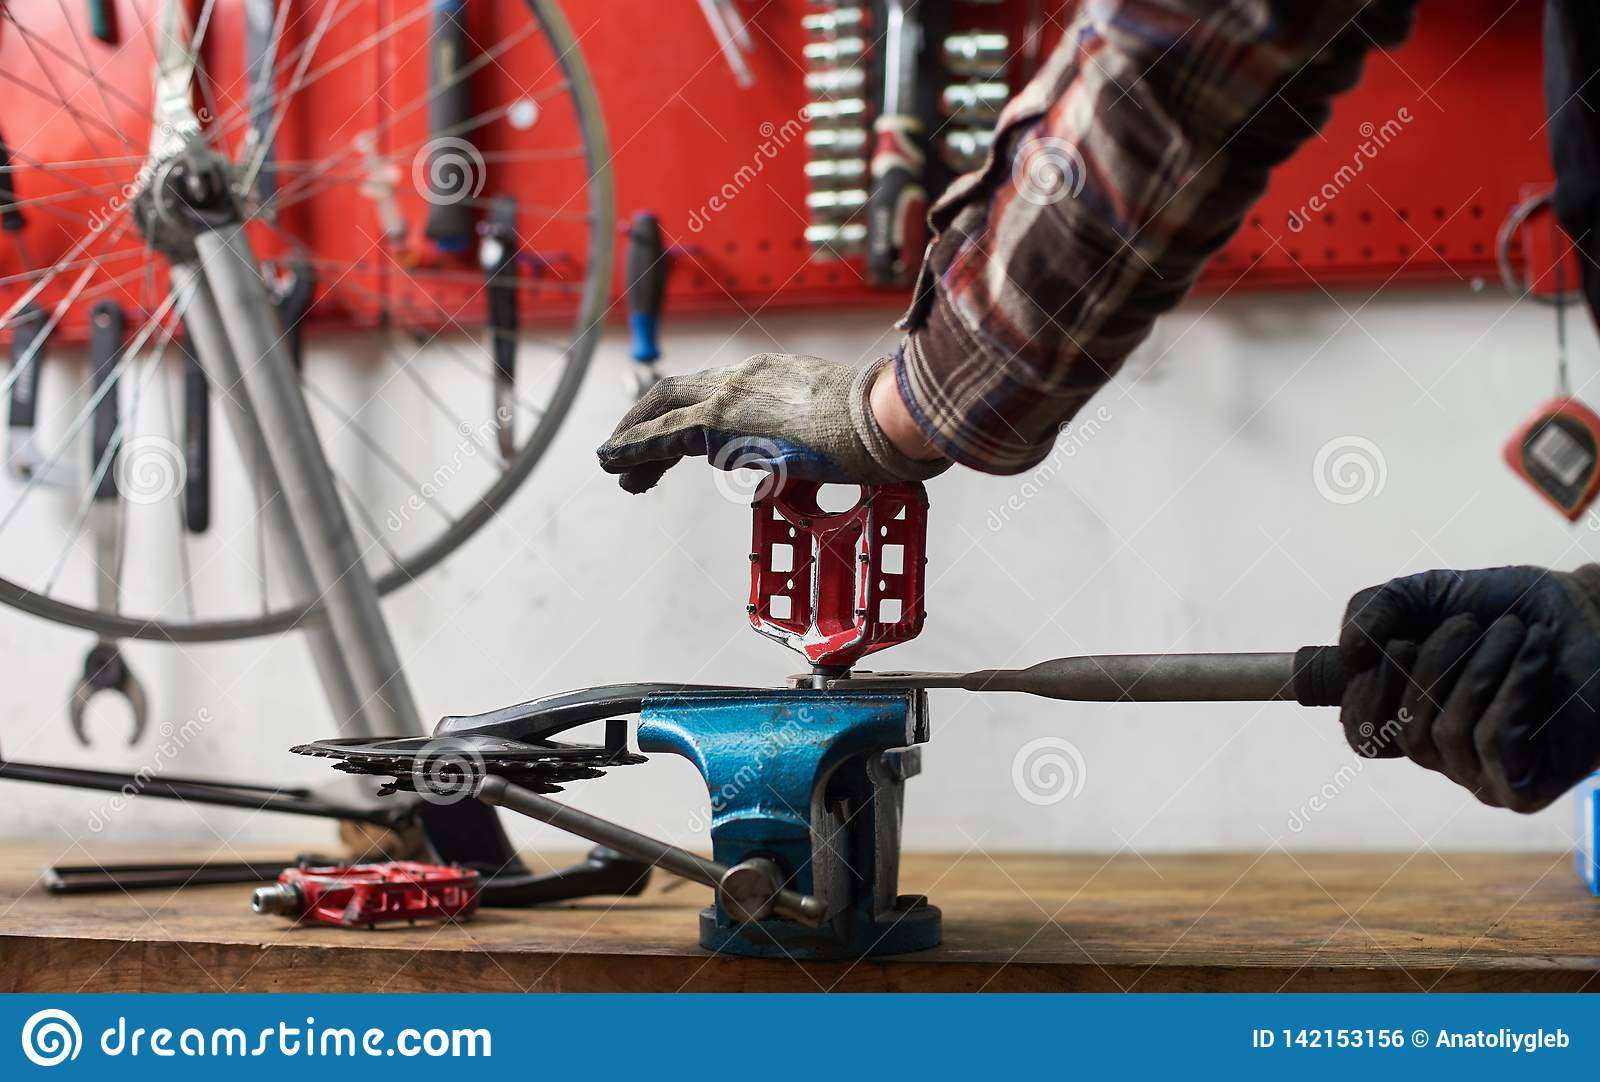 Male Mechanic Working In Bicycle Repair Shop Using Tools